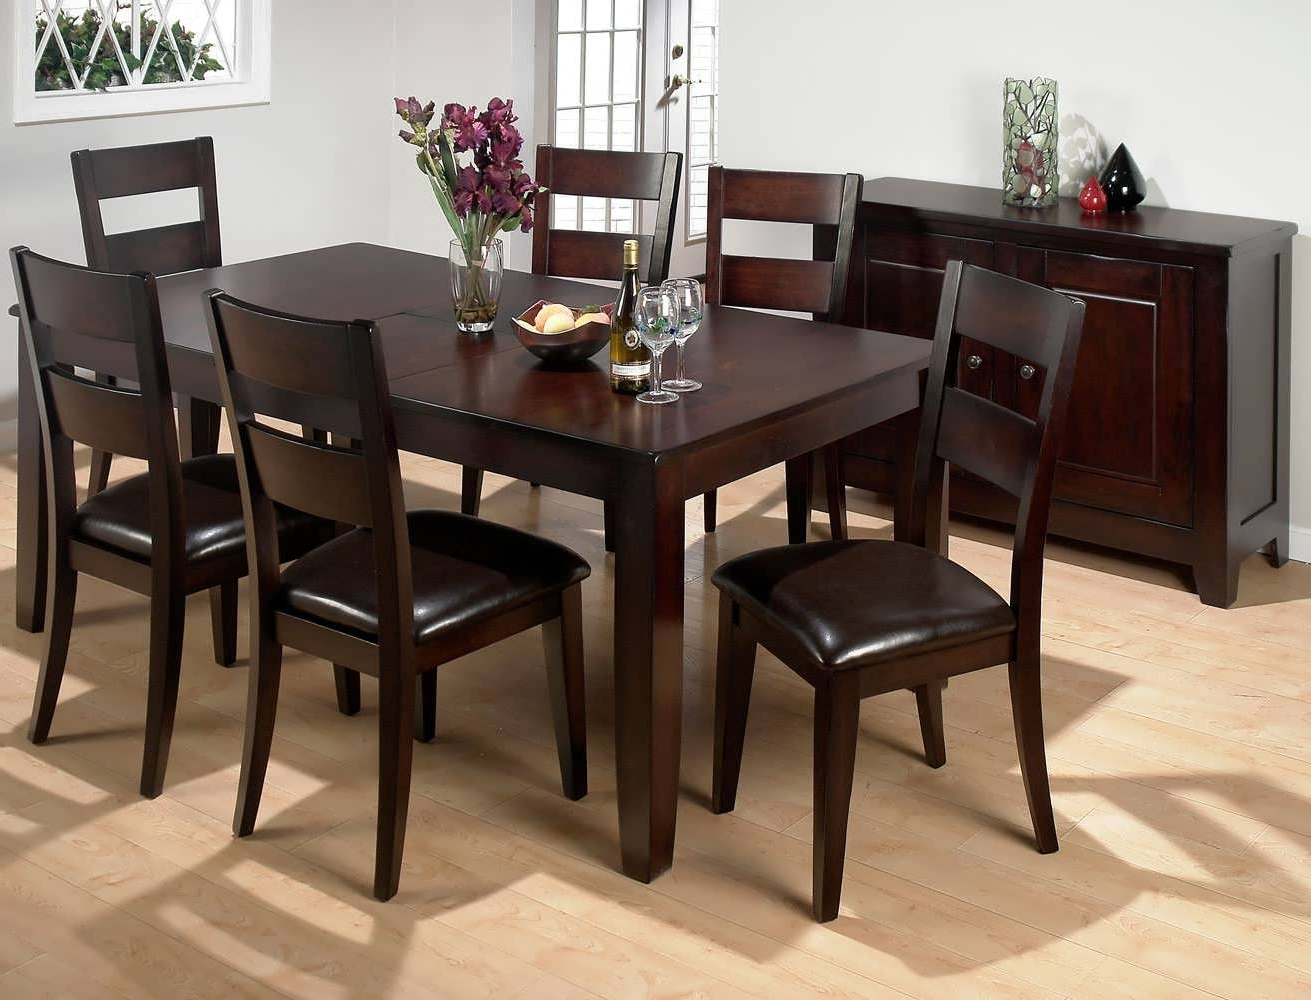 Dining Tables. Extraordinary Tall Square Dining Table: Tall-Square regarding Fashionable Dining Tables And Six Chairs